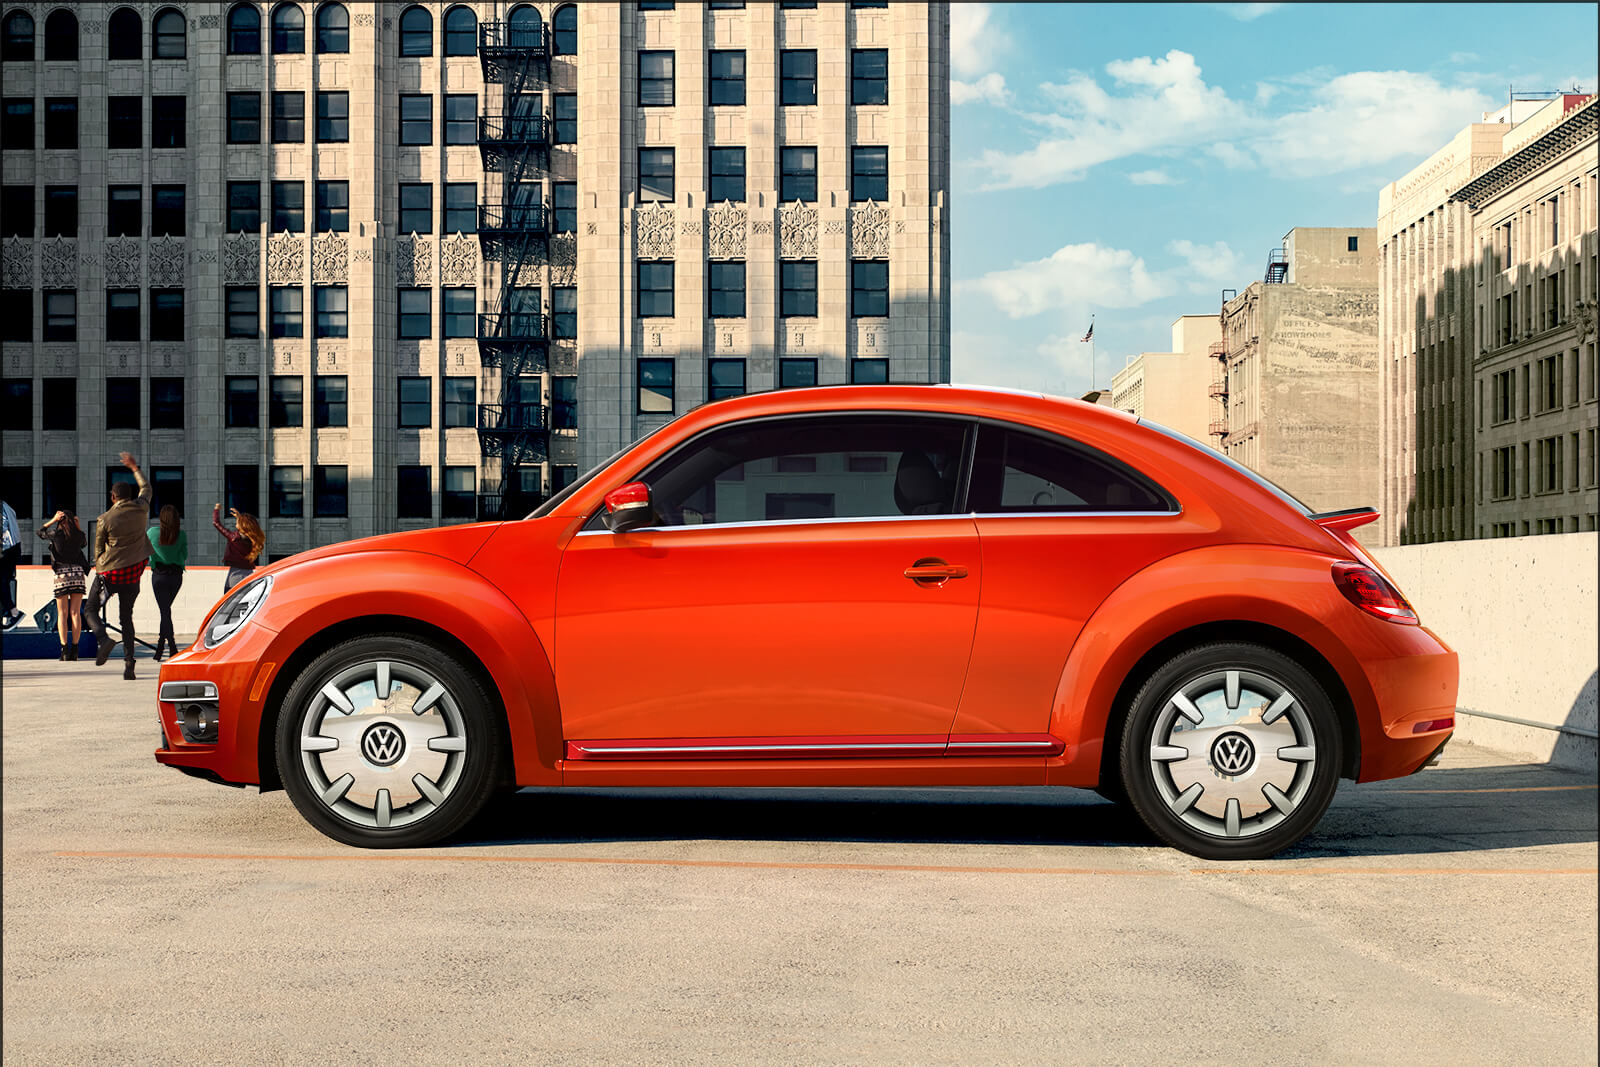 2018 Volkswagen Beetle for Lease near Laurel, MD